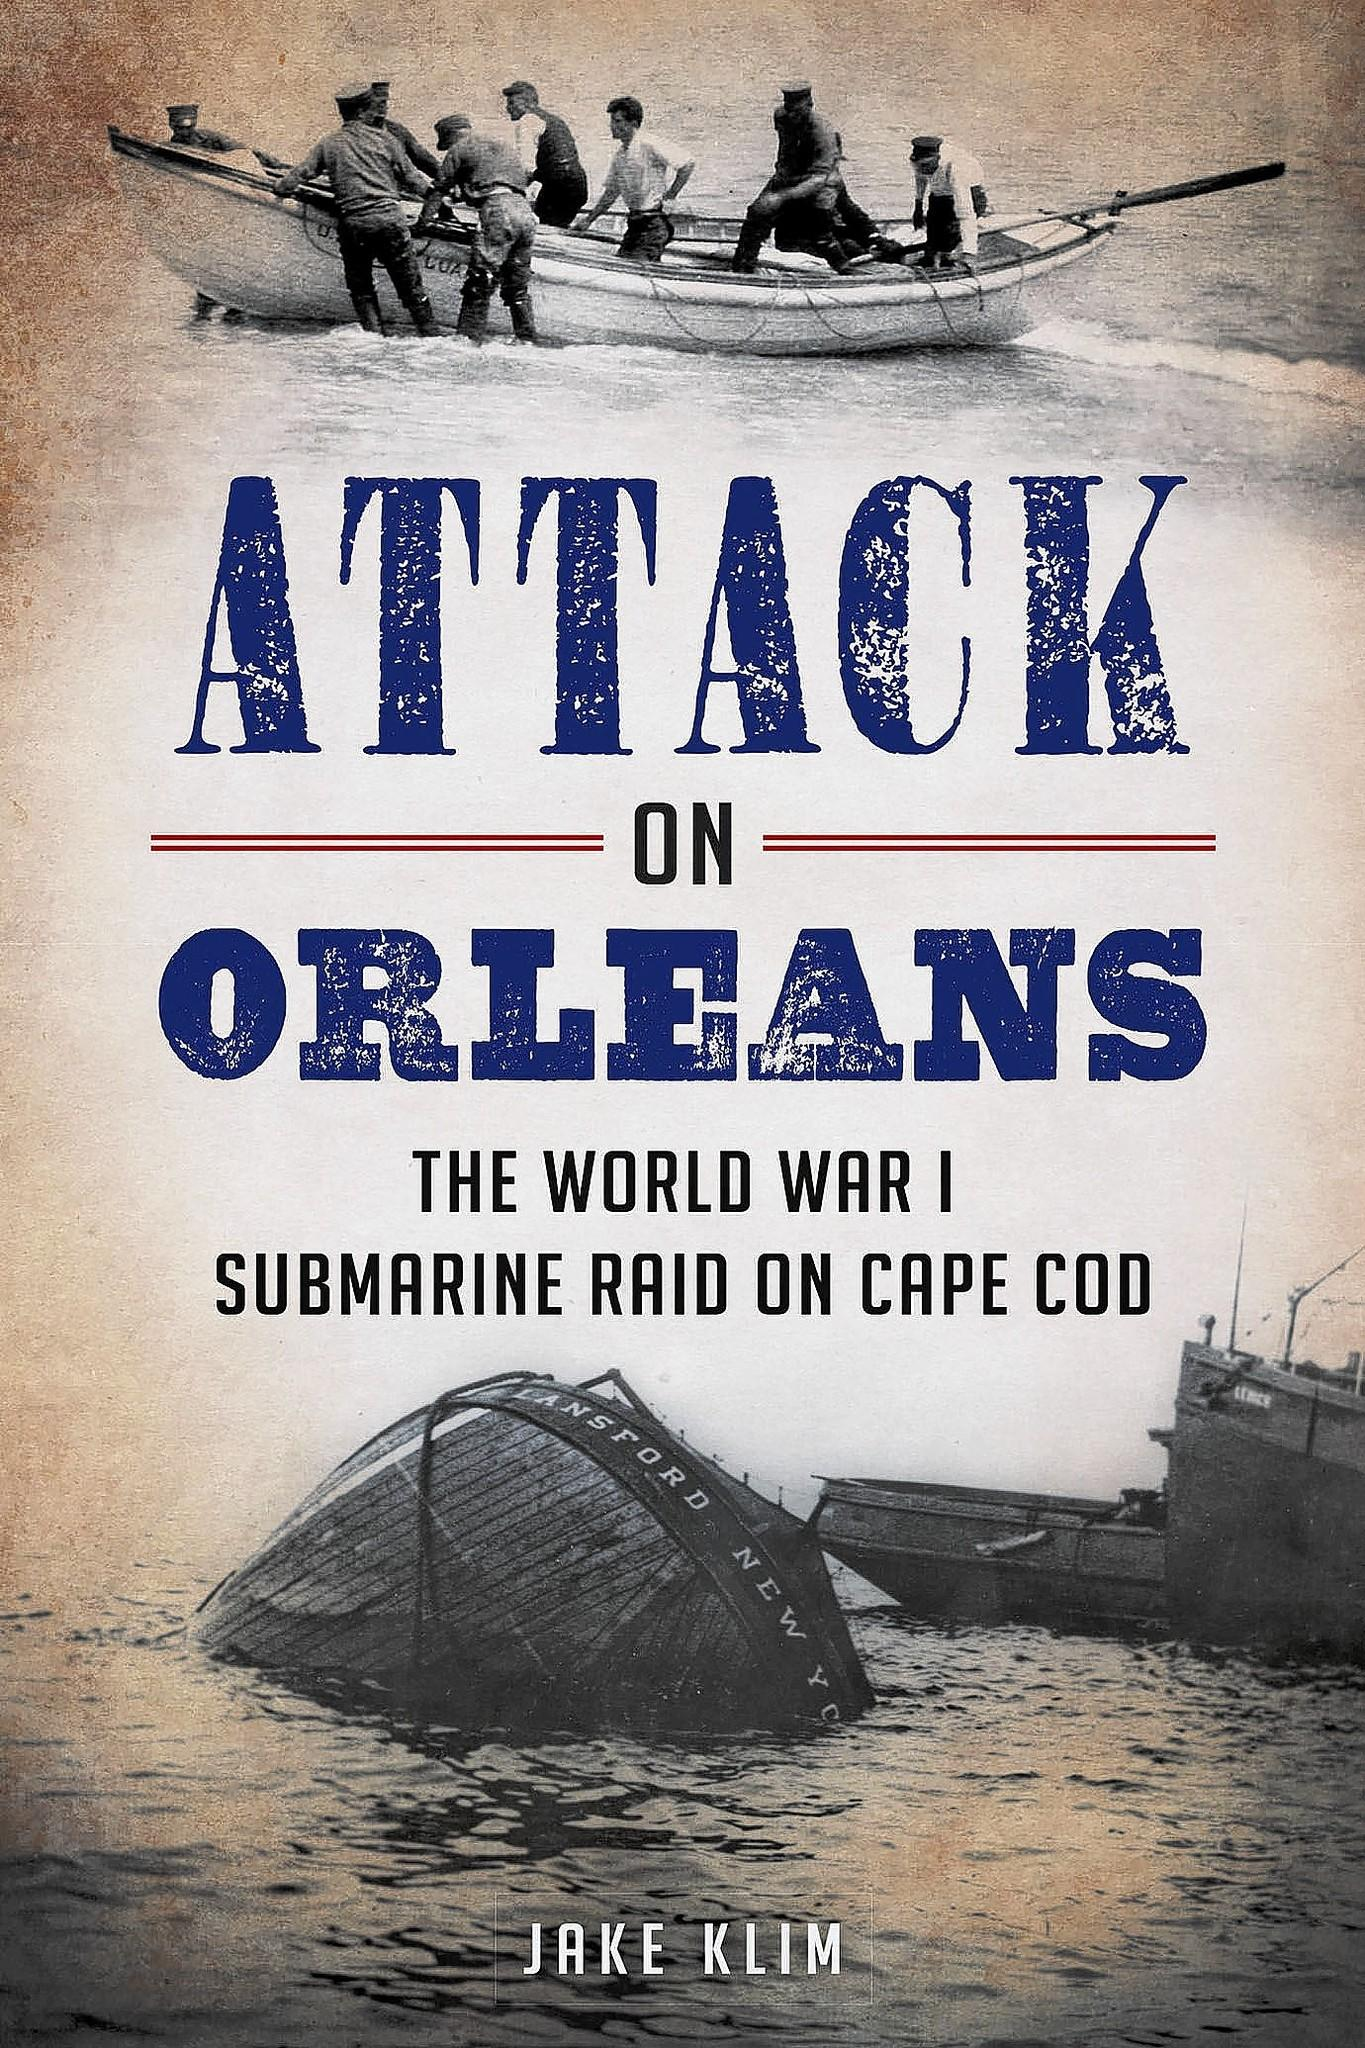 Jake Klim's new book 'Attack on Orleans.'